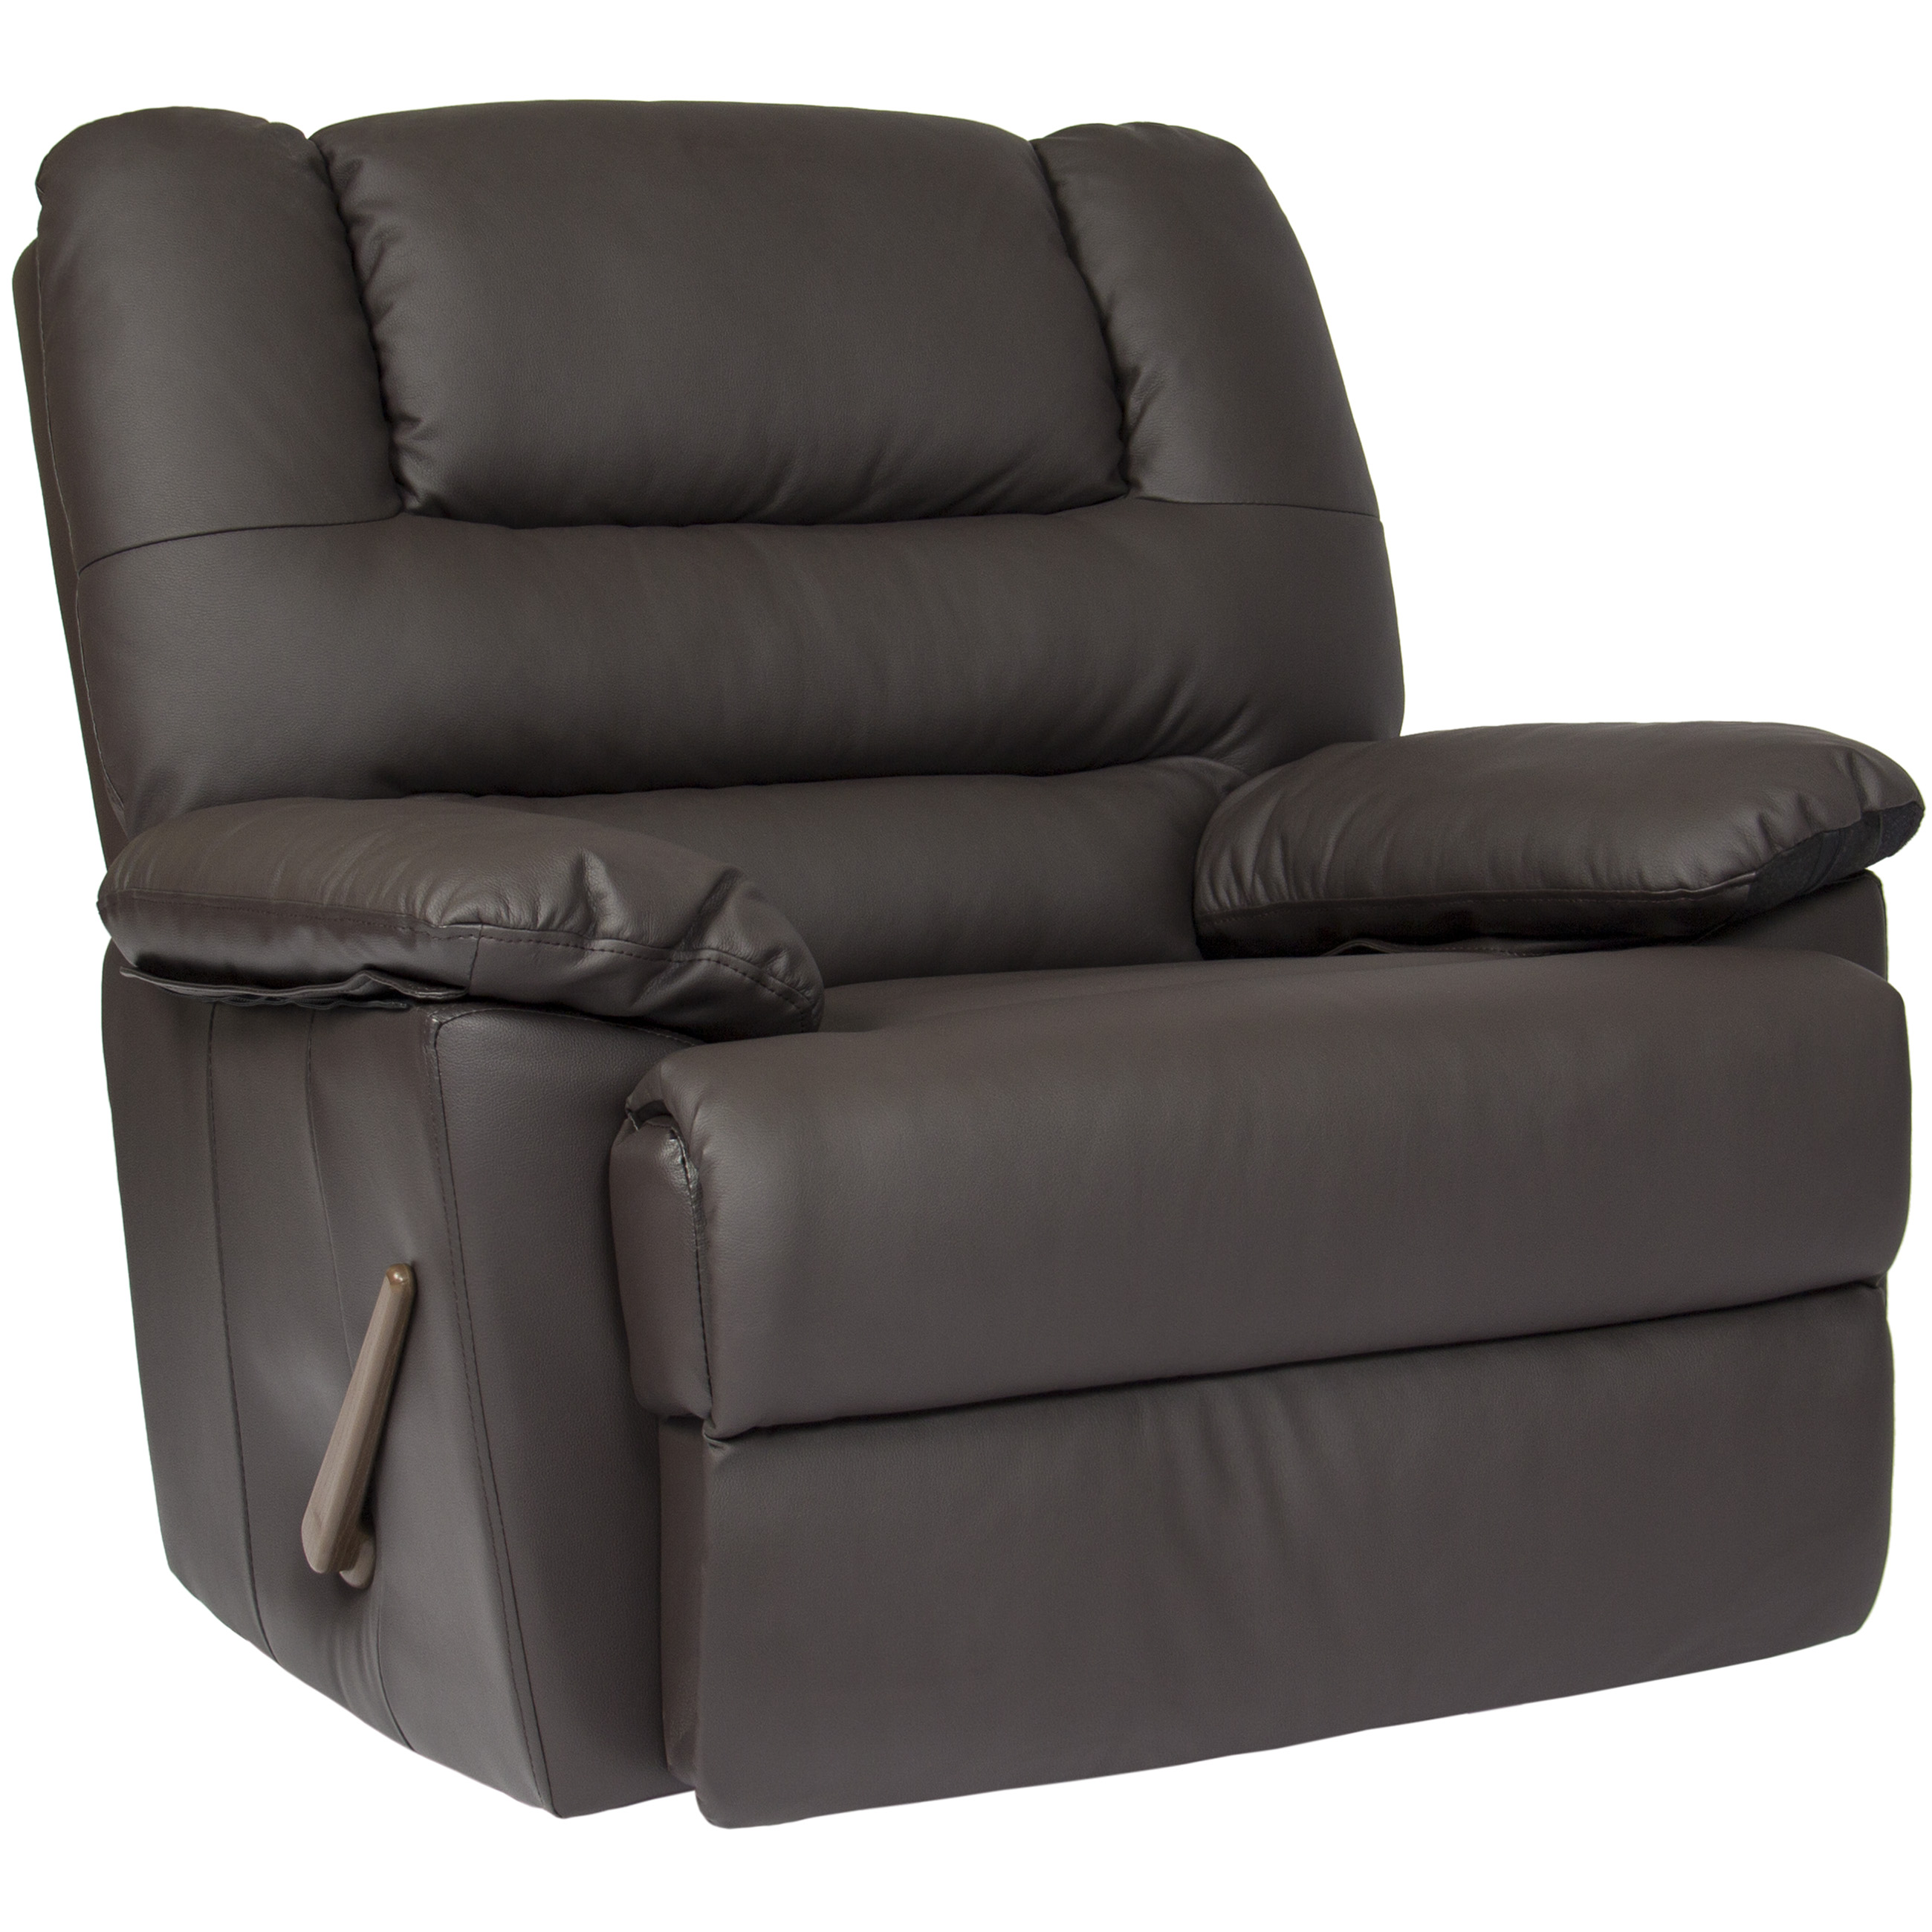 Best Choice Products Deluxe Padded PU Leather Recliner Chair by